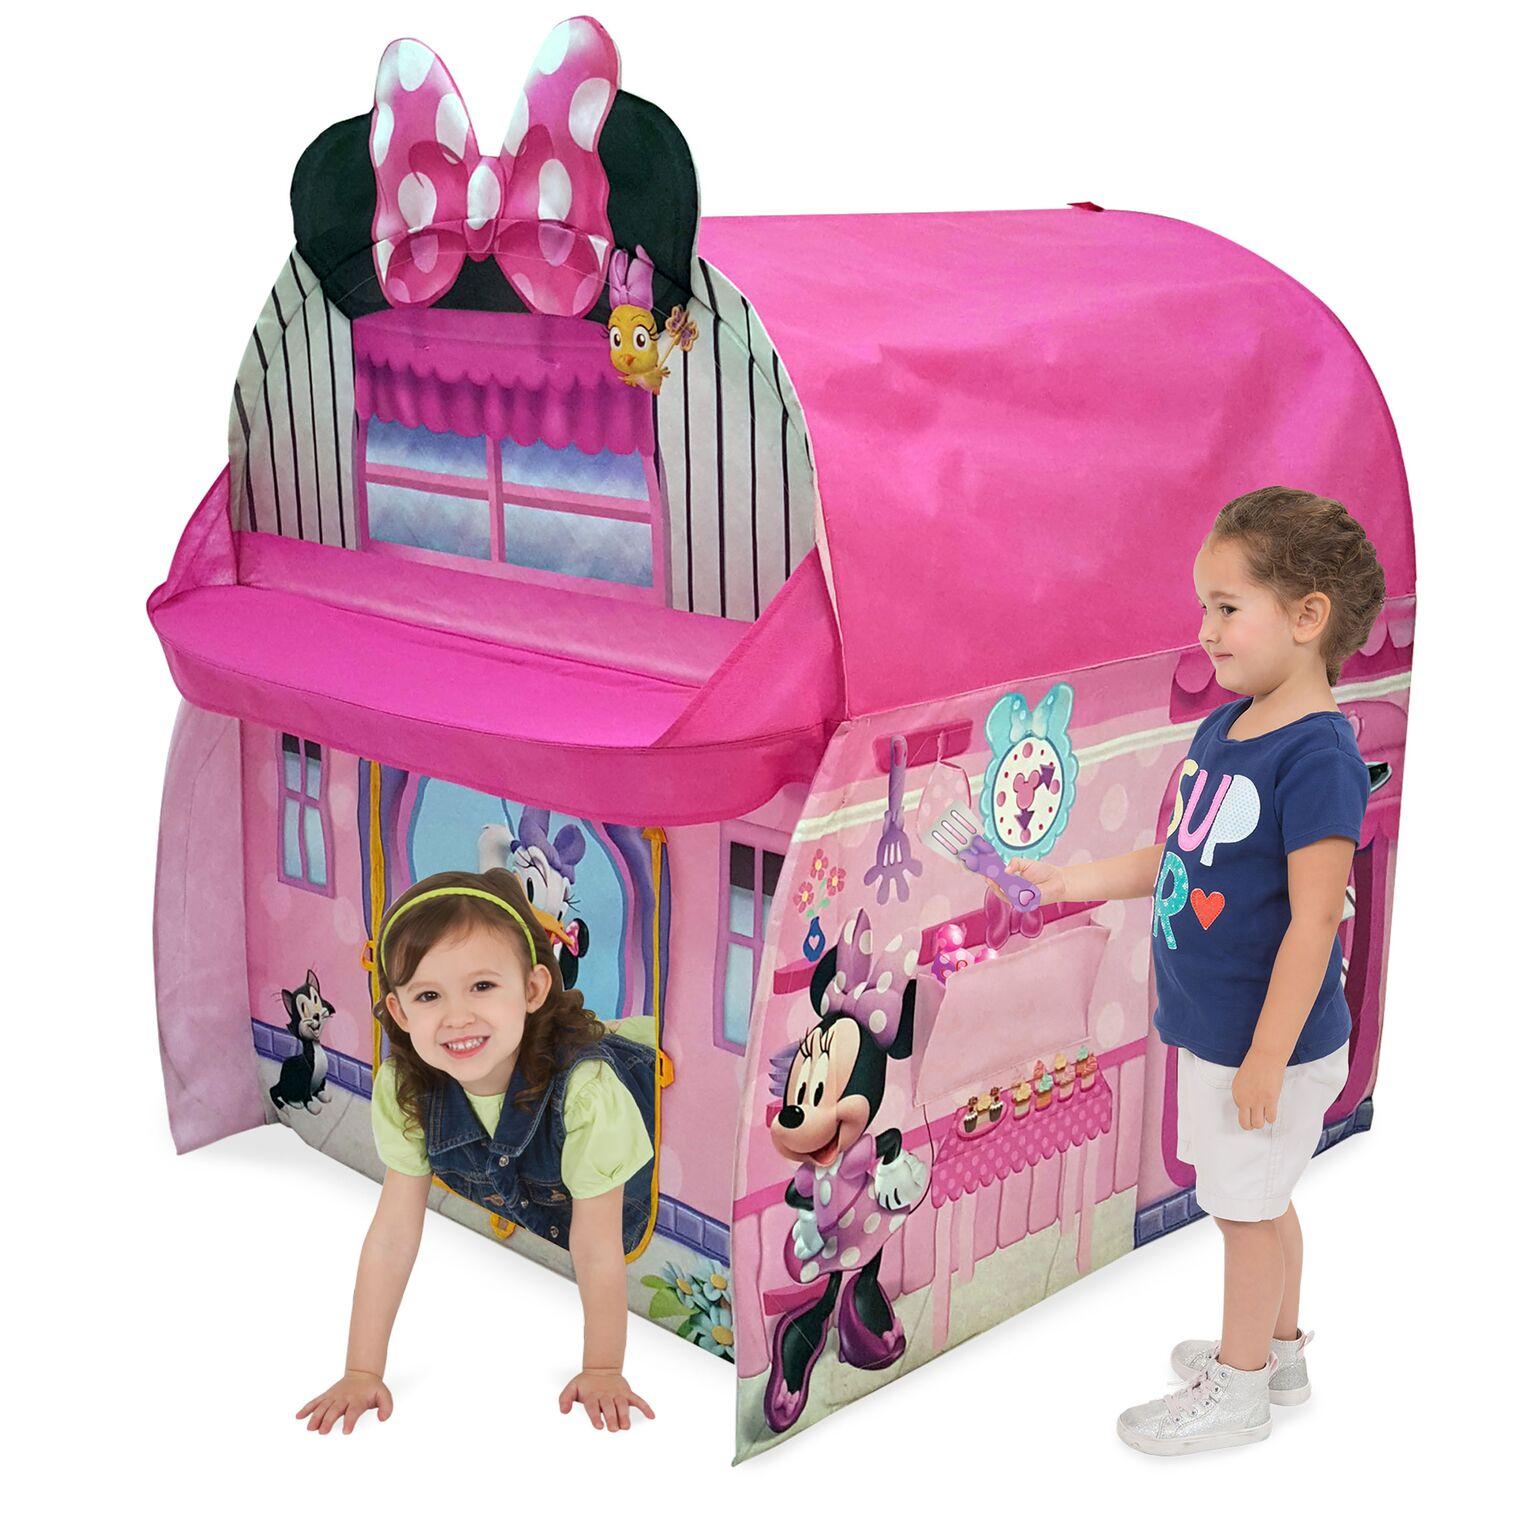 Playhut Minnie Kitchen Play Tent